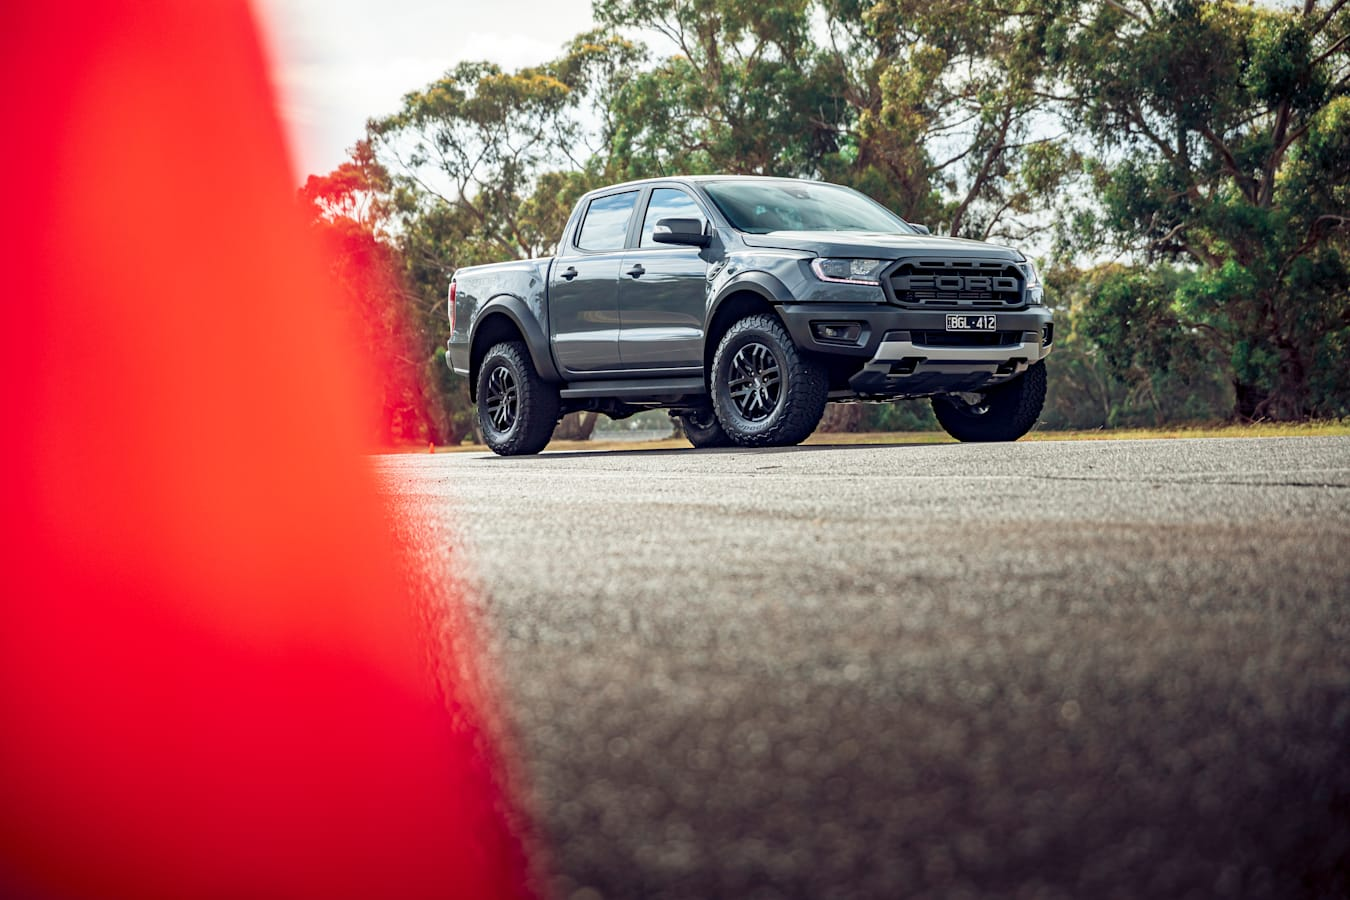 4 X 4 Australia Comparisons 2021 May 21 Ford Ranger Raptor Front